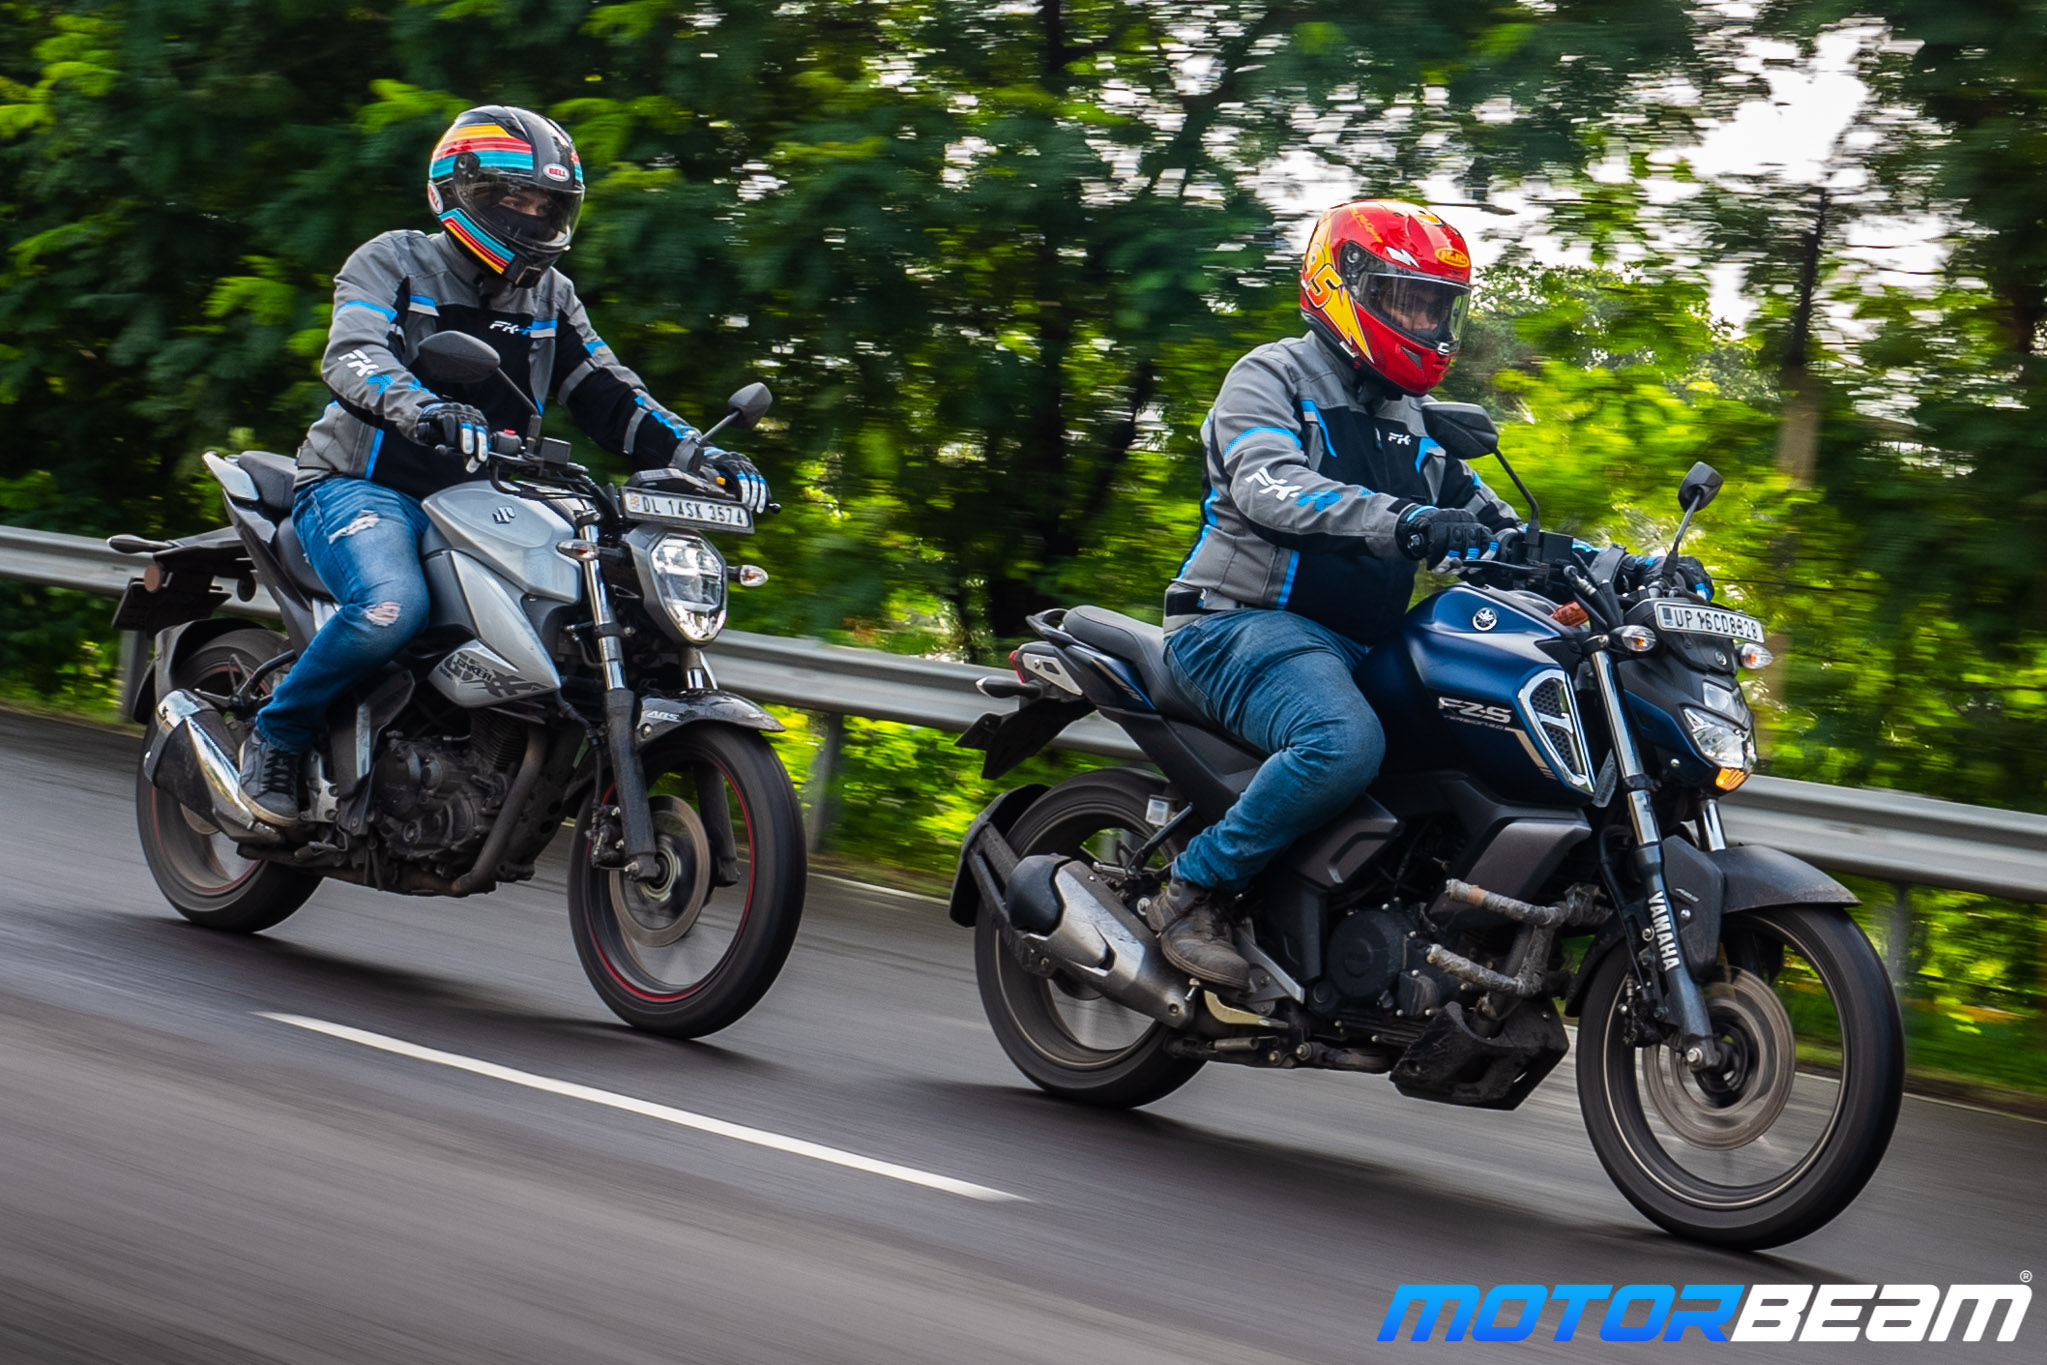 Suzuki Gixxer vs Yamaha FZ-S V3 Comparison Shootout